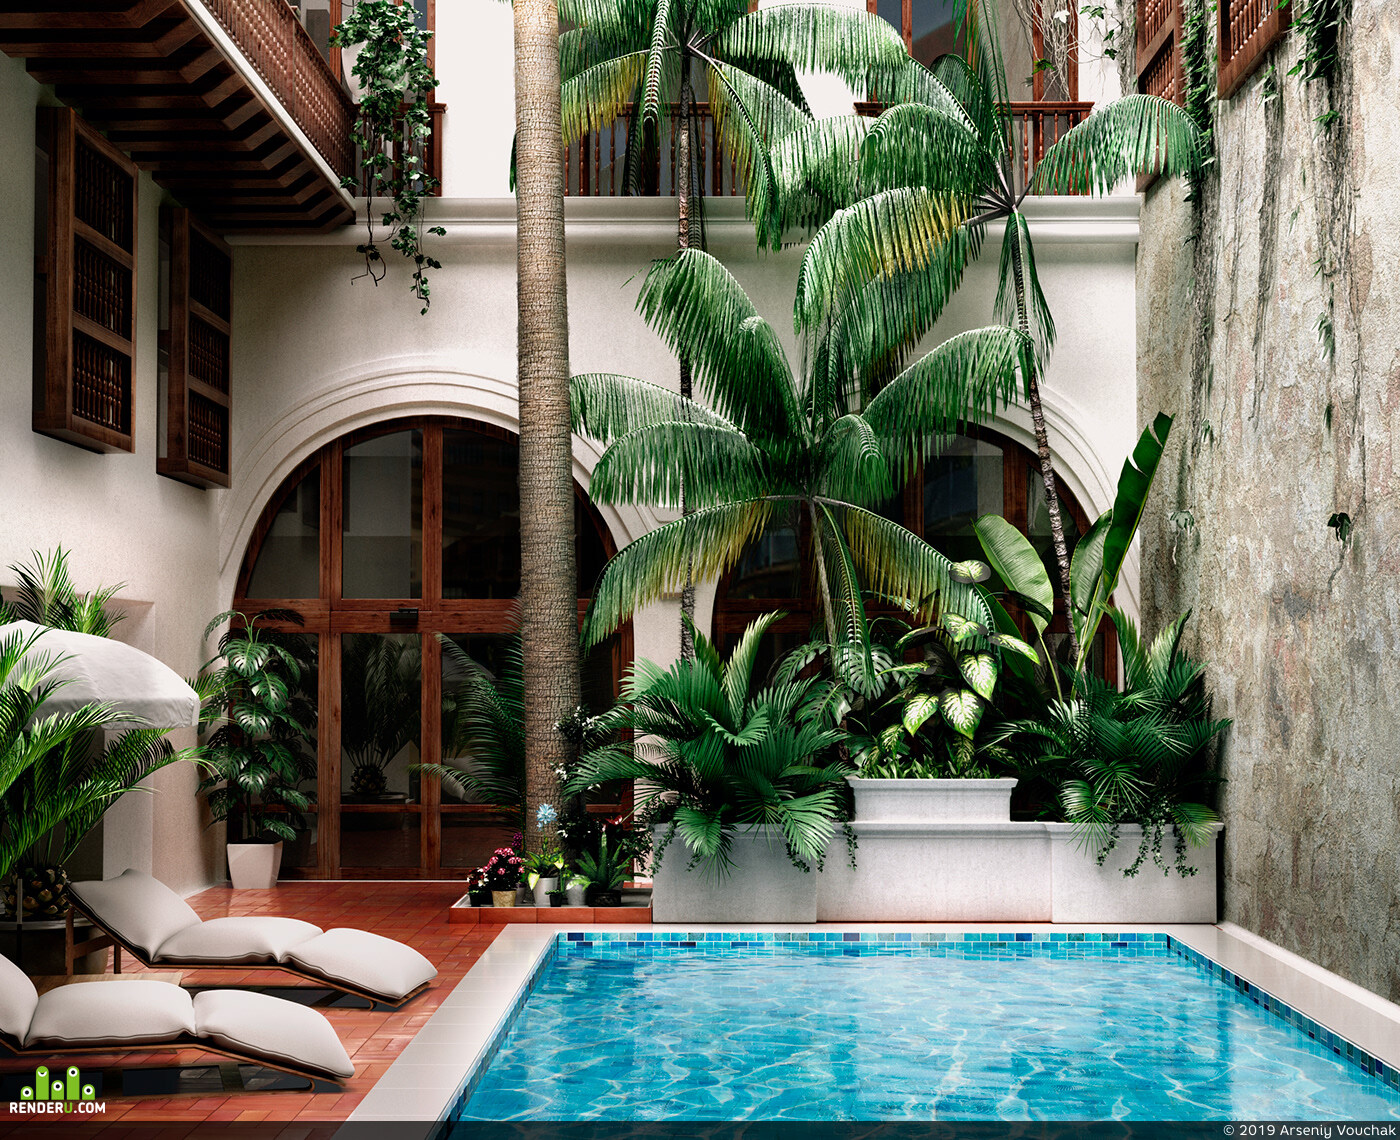 preview The Pool Interior. 3D Visualization